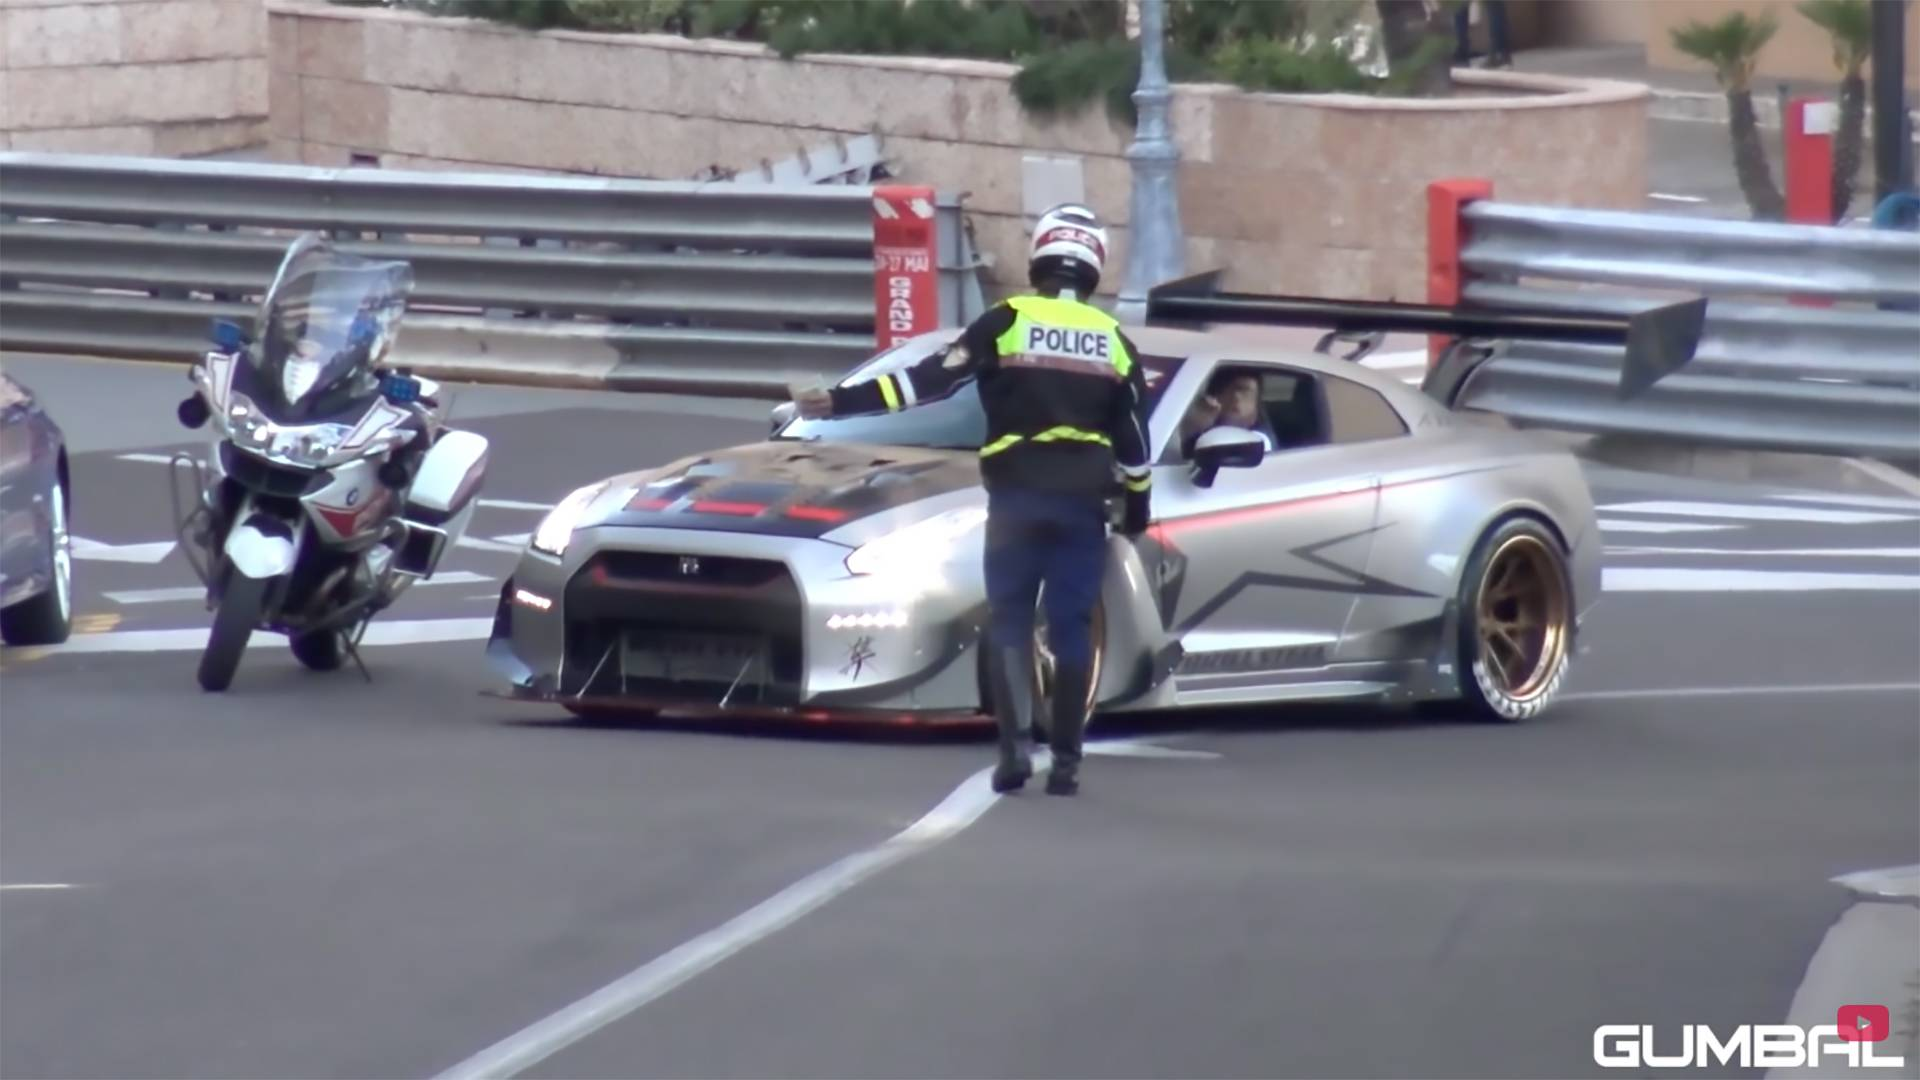 1850 Hp Nissan Gt R With Huge Wing Gets Pulled Over By Police Motor